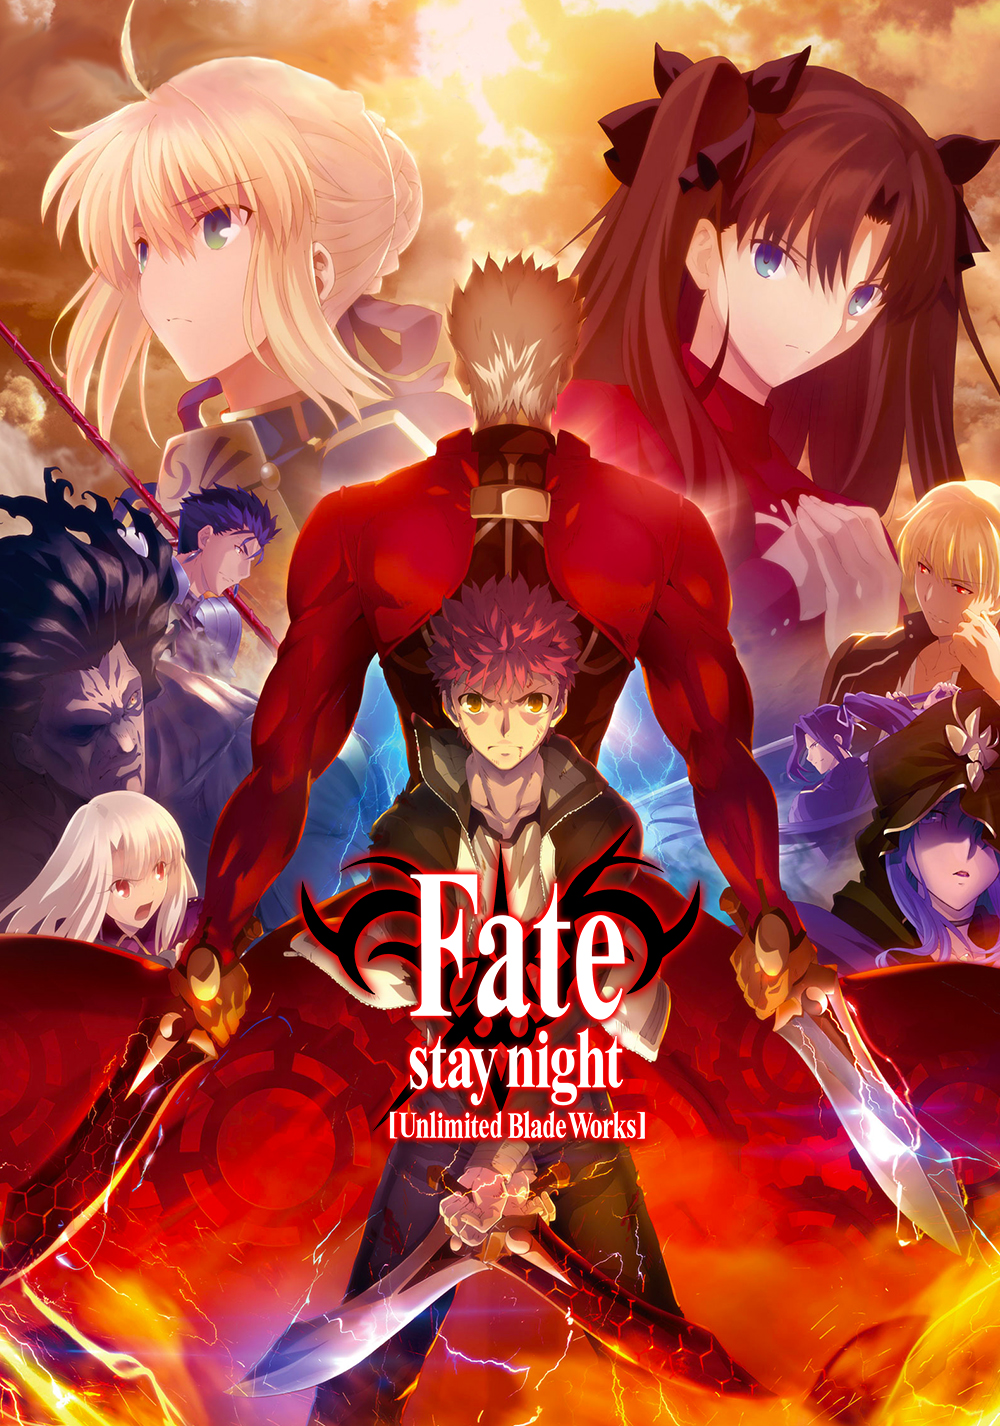 01 - fatestay-night-unlimited-blade-works-551c0919230cc